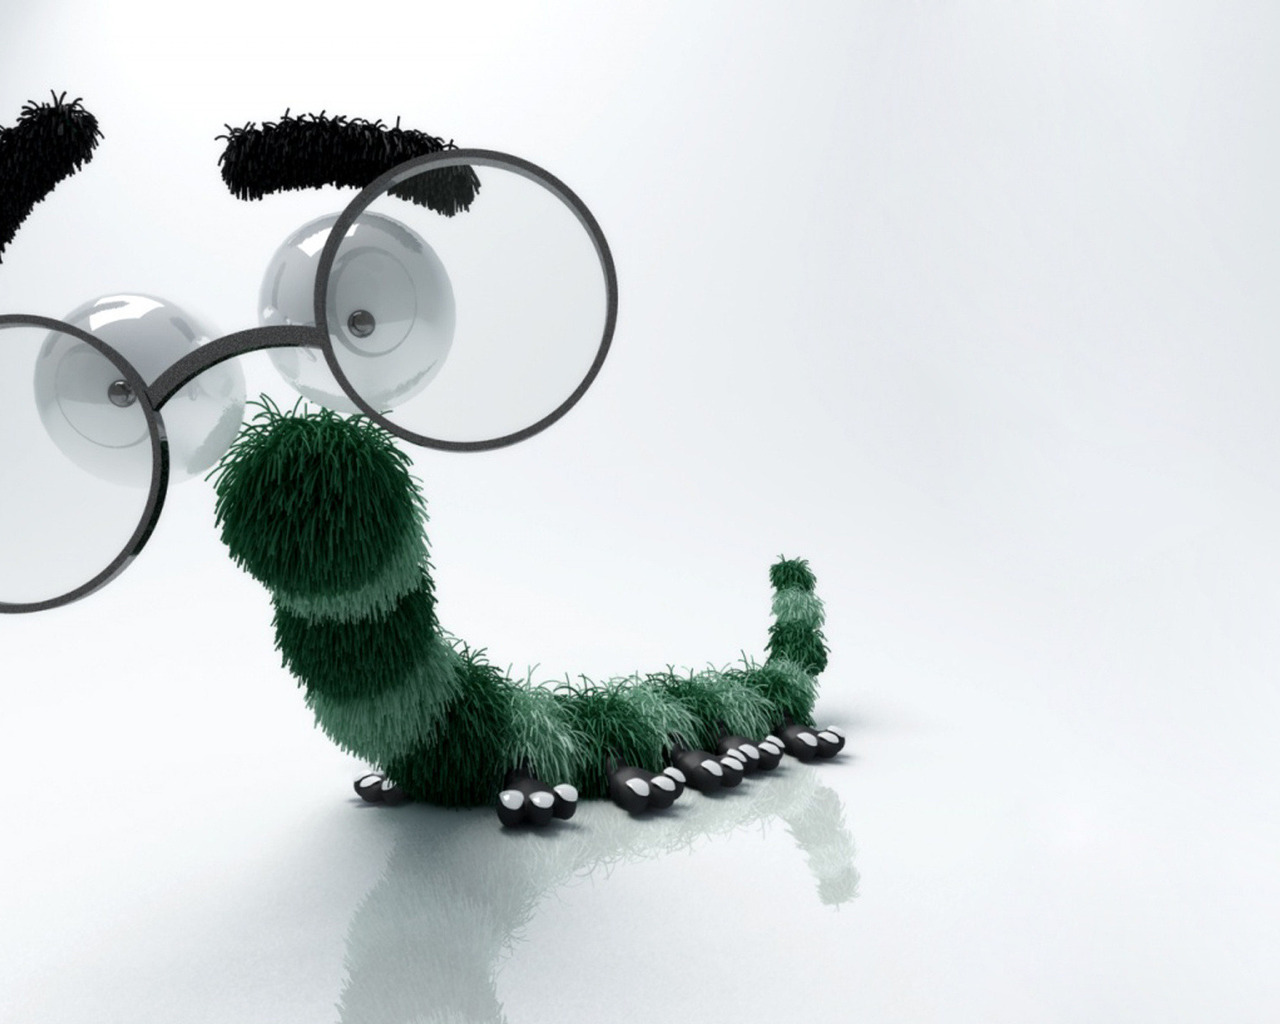 Caterpillar with Glasses